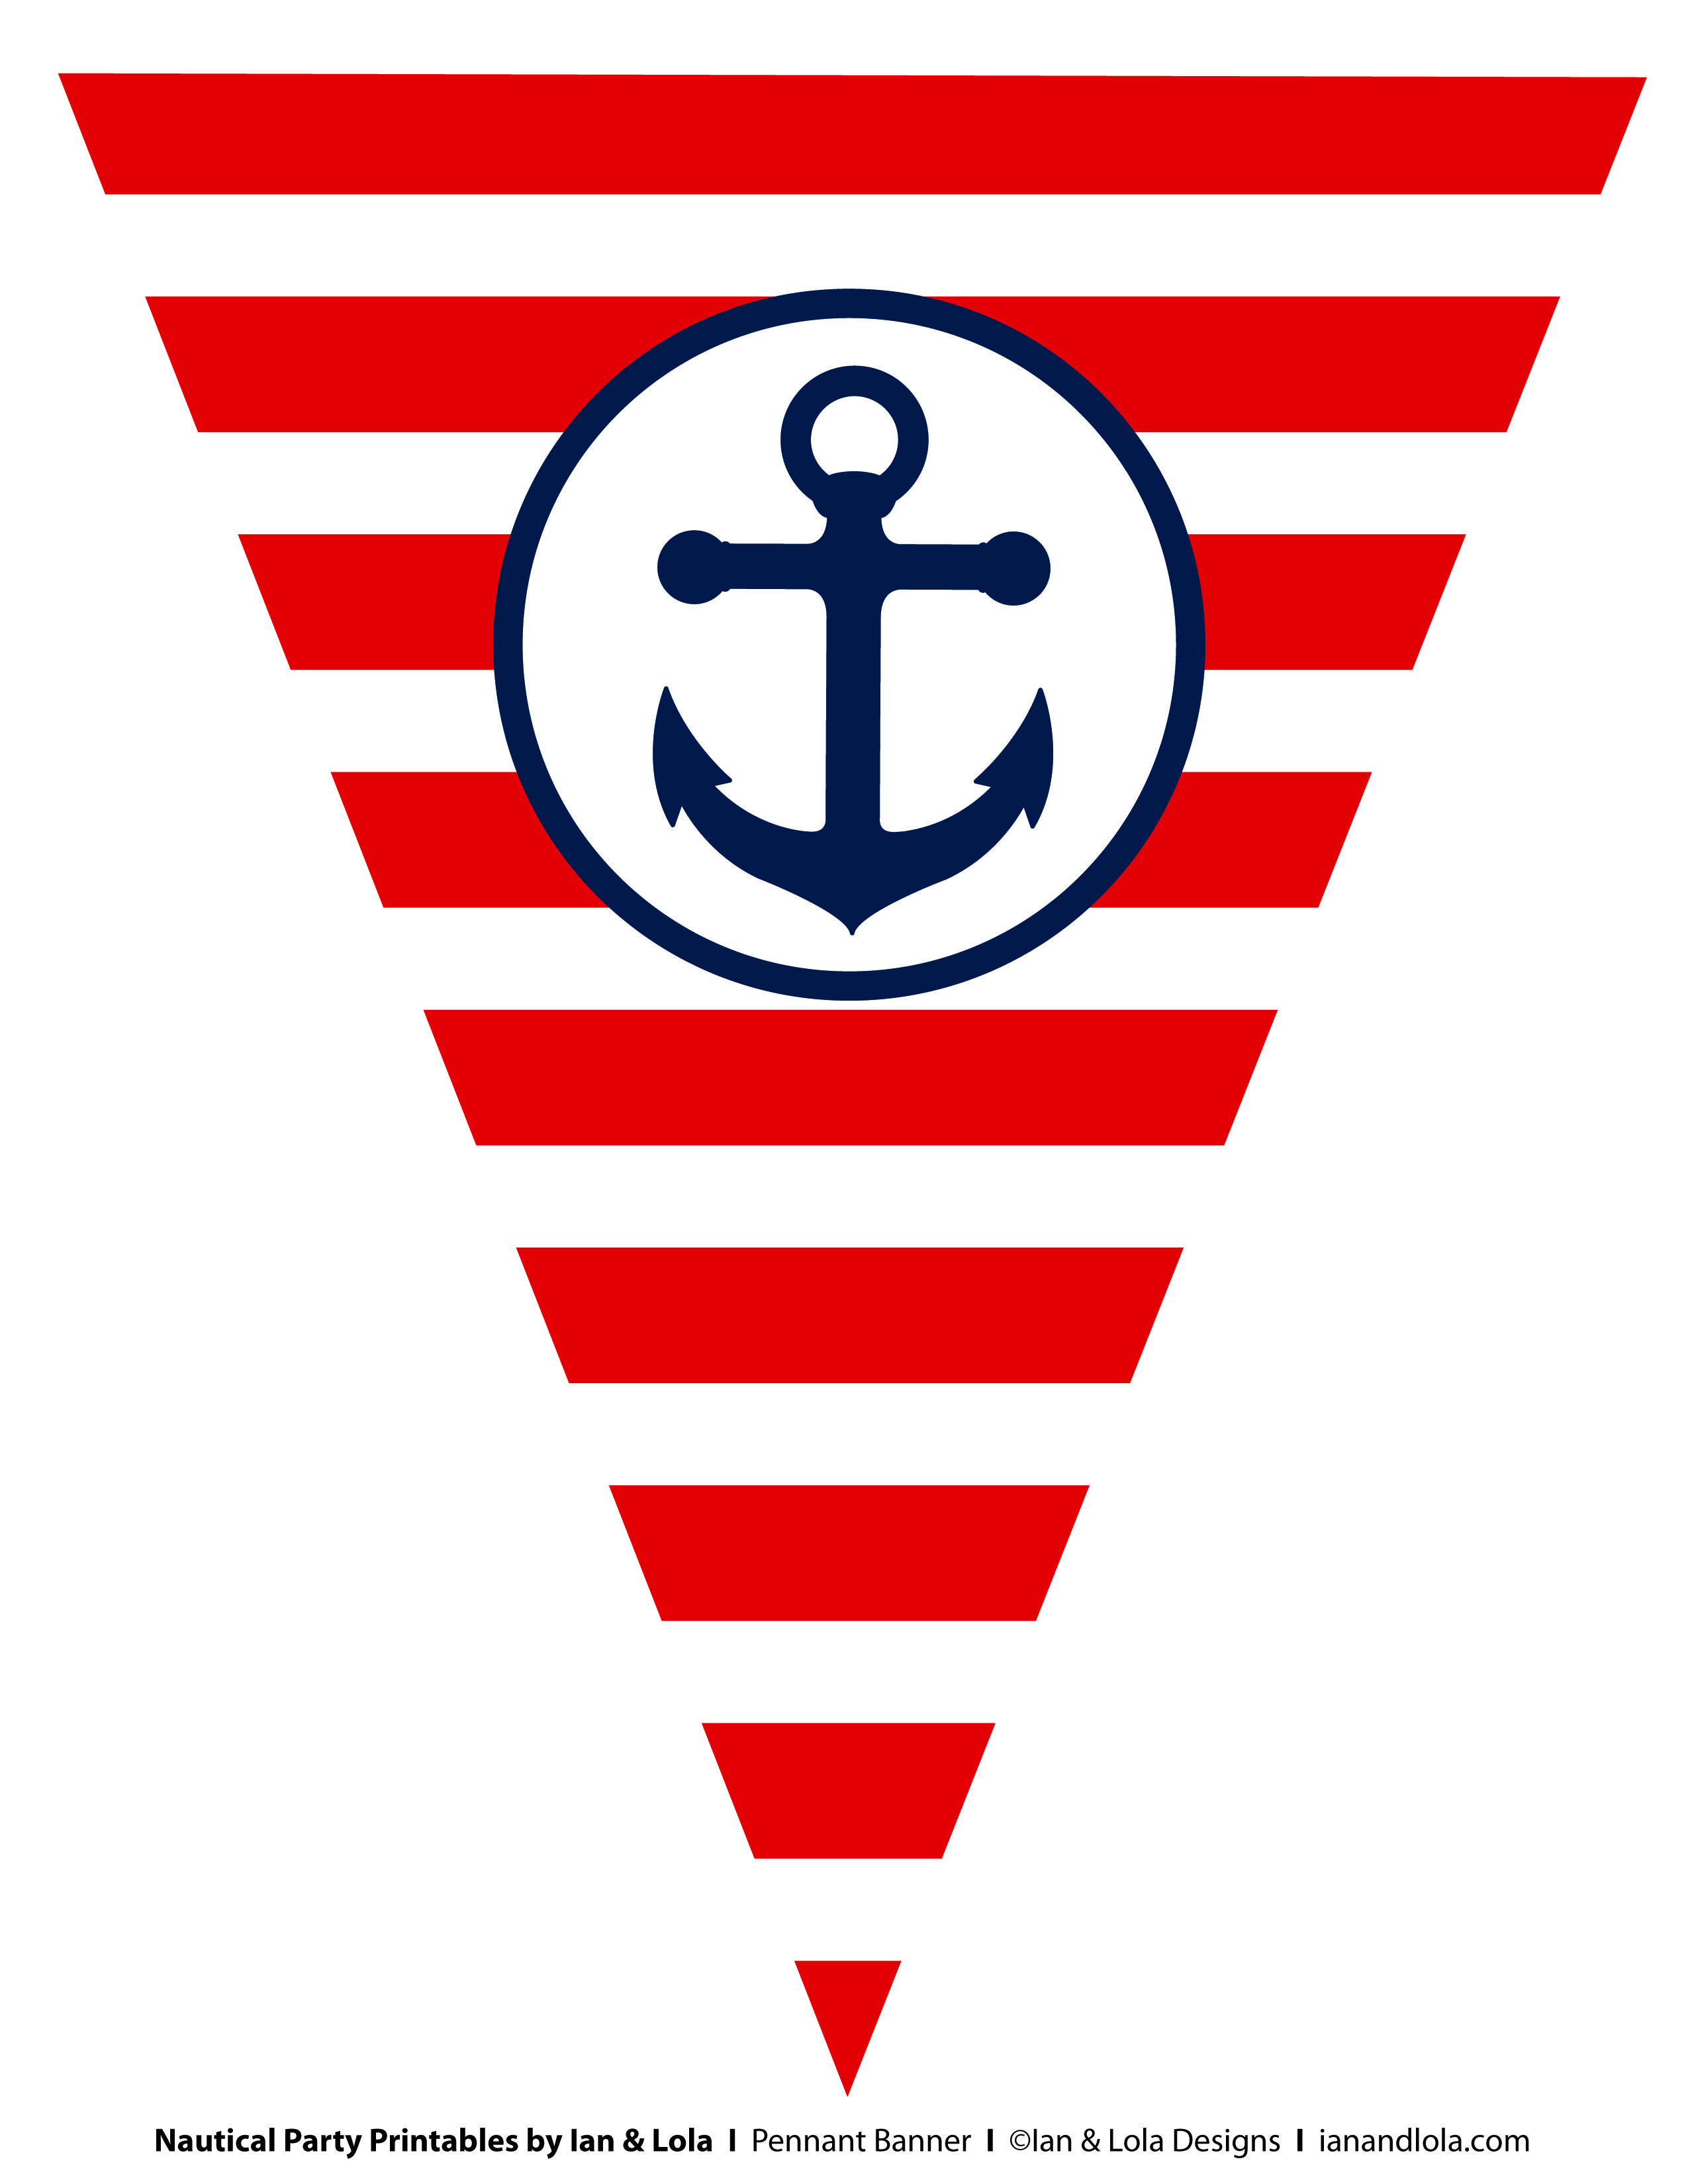 Free nautical party printables from ian lola designs nautical free nautical party printables from ian lola designs pronofoot35fo Choice Image